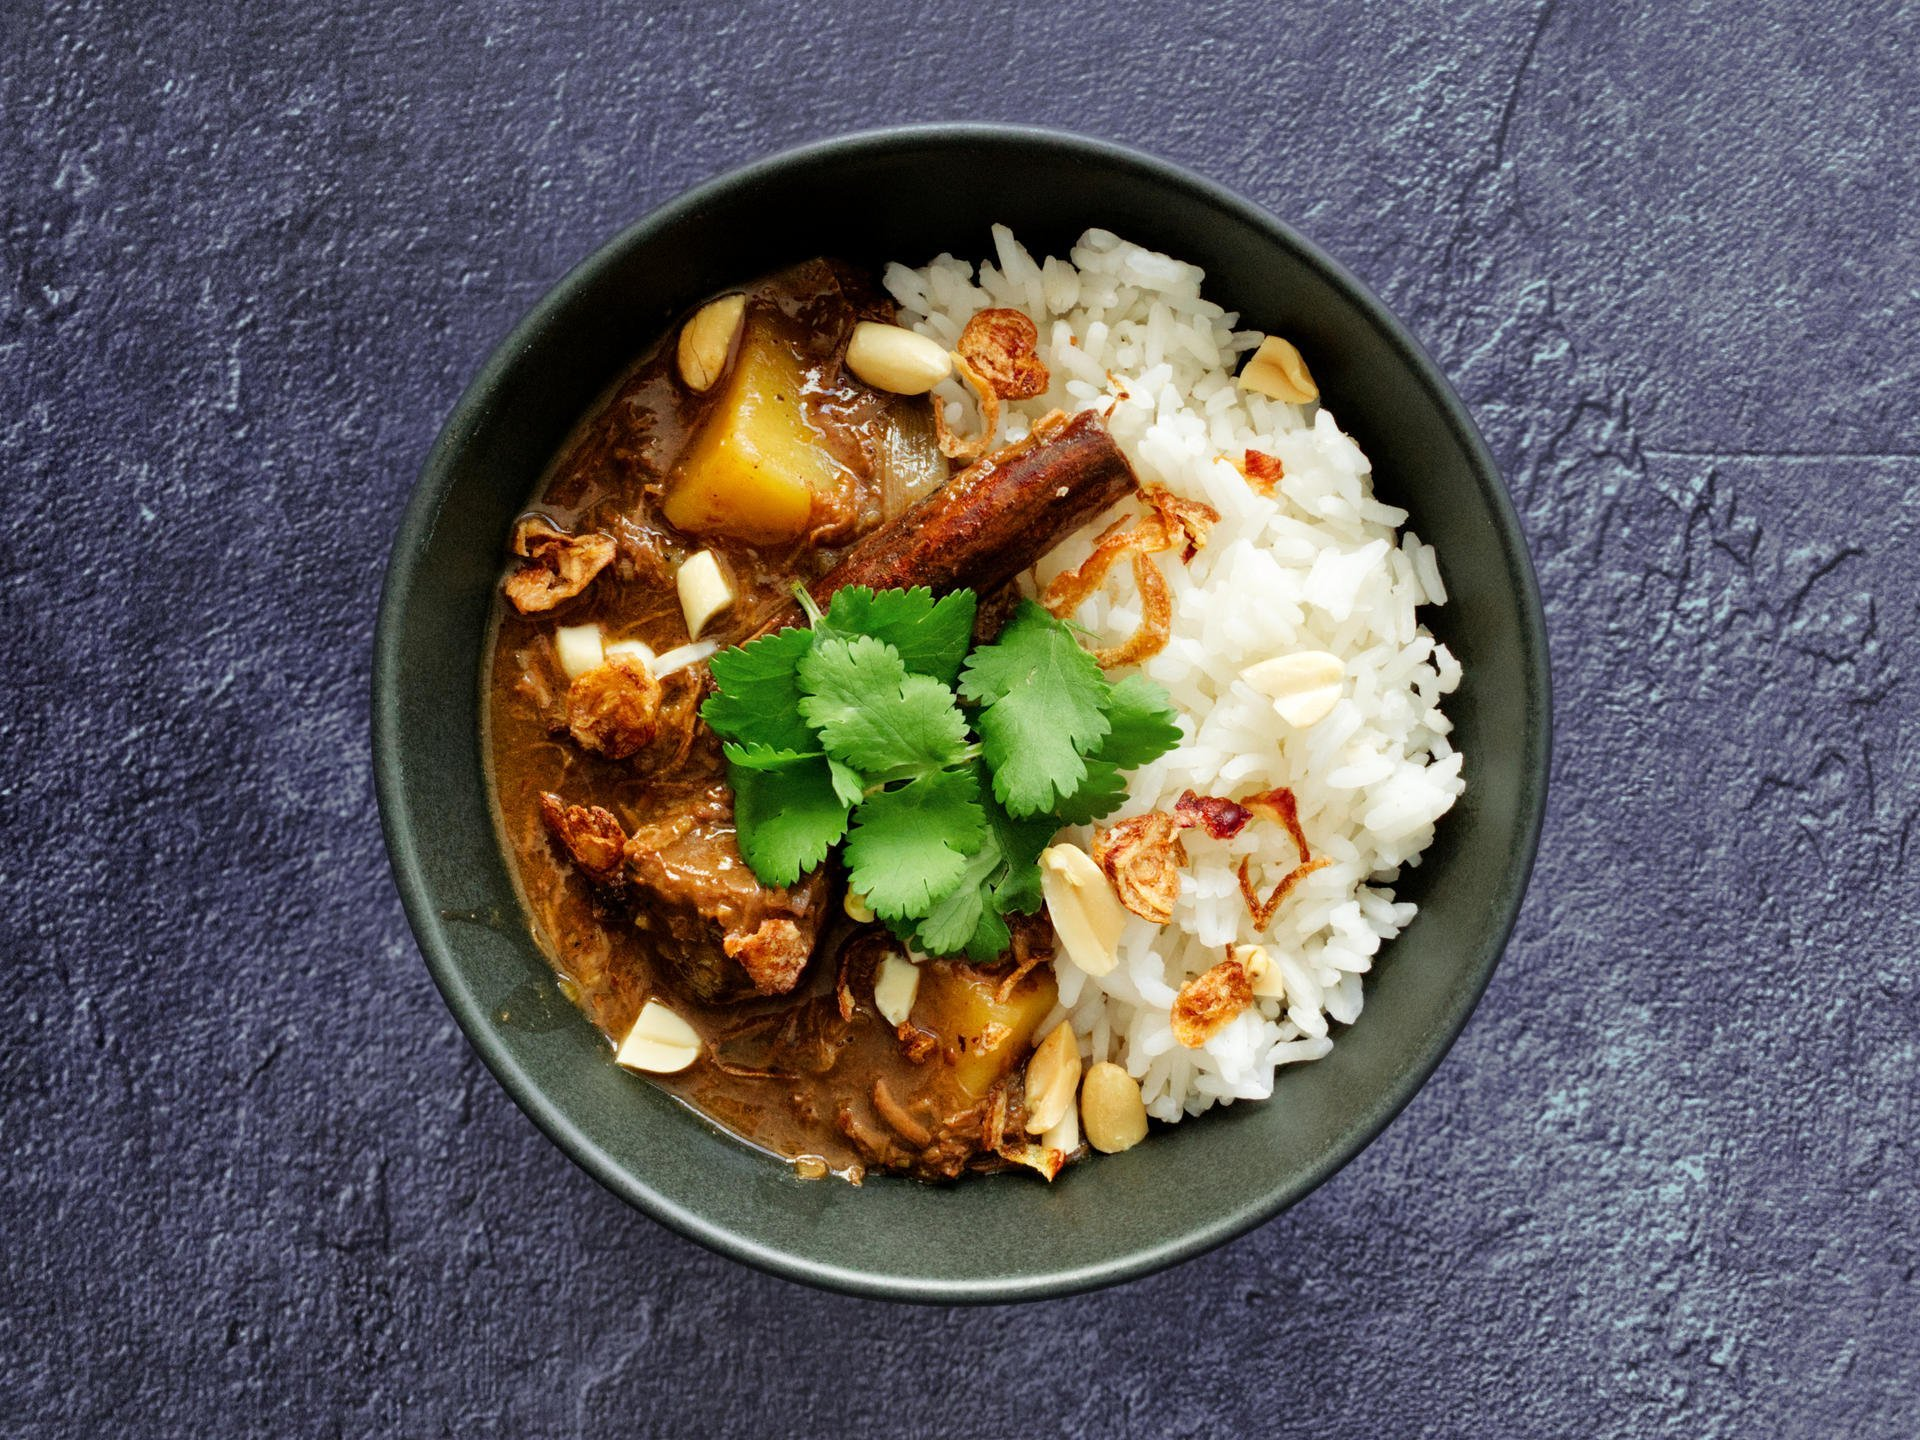 Beef massaman curry served in a bowl with rice and garnished with coriander, peanuts and dried shallots